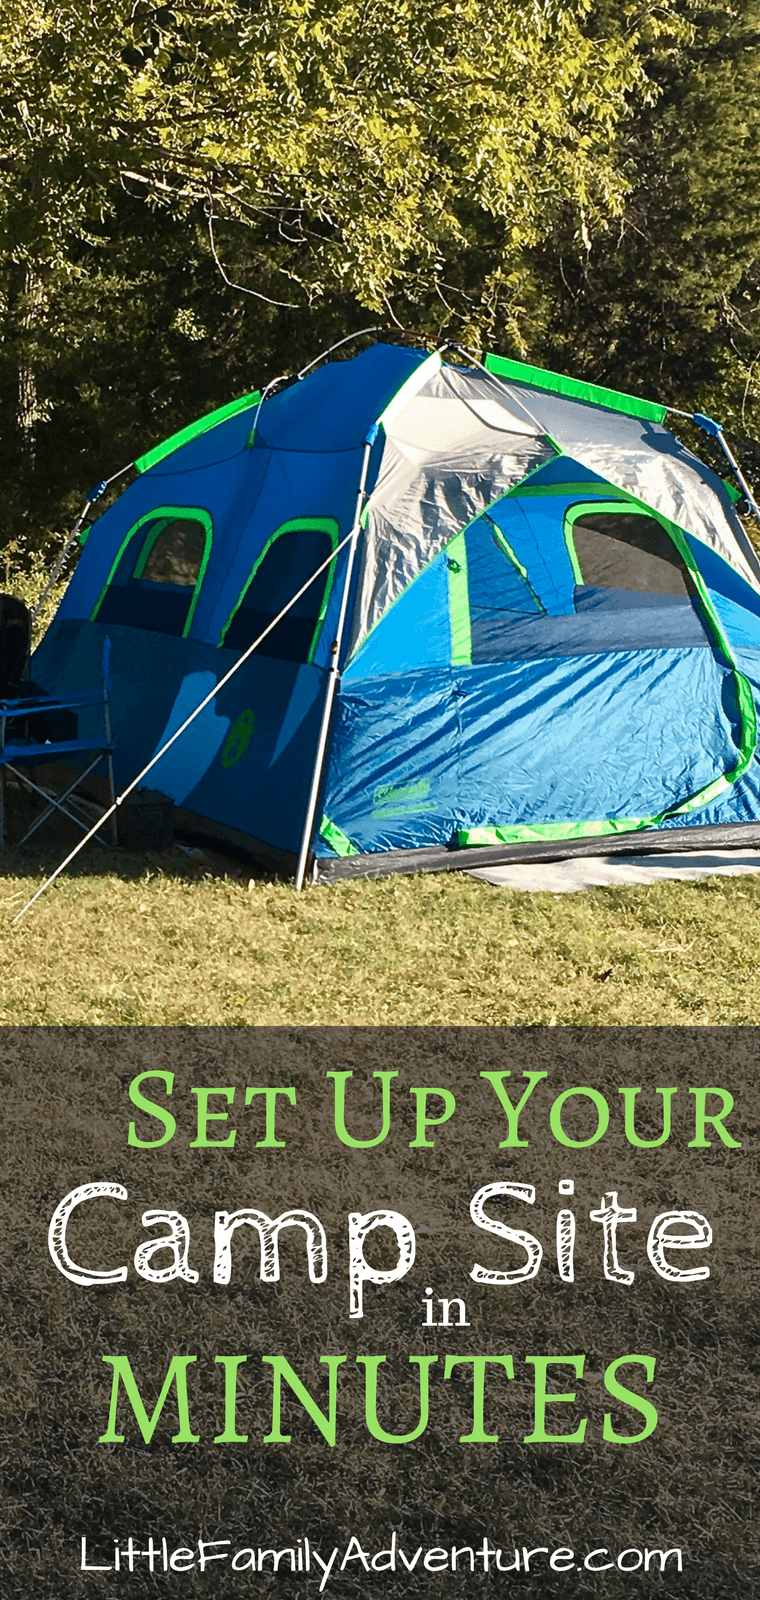 Coleman Instant Tent - Get outdoors more and set up camp in minutes with this camping tent from Coleman. See how easy it is to set up and help you rock your next camping trip.